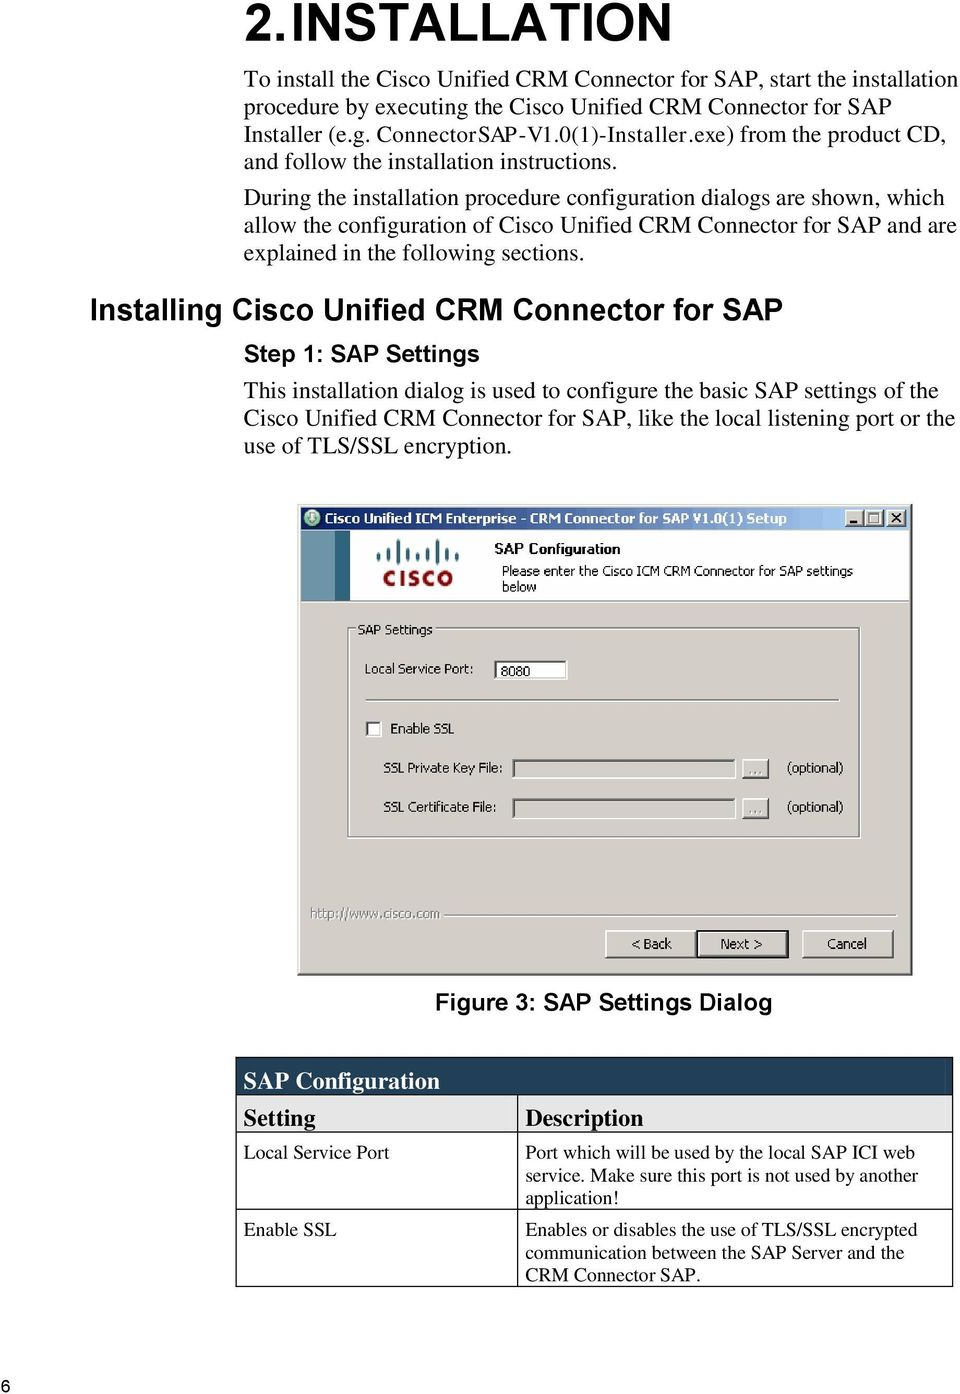 During the installation procedure configuration dialogs are shown, which allow the configuration of Cisco Unified CRM Connector for SAP and are explained in the following sections.